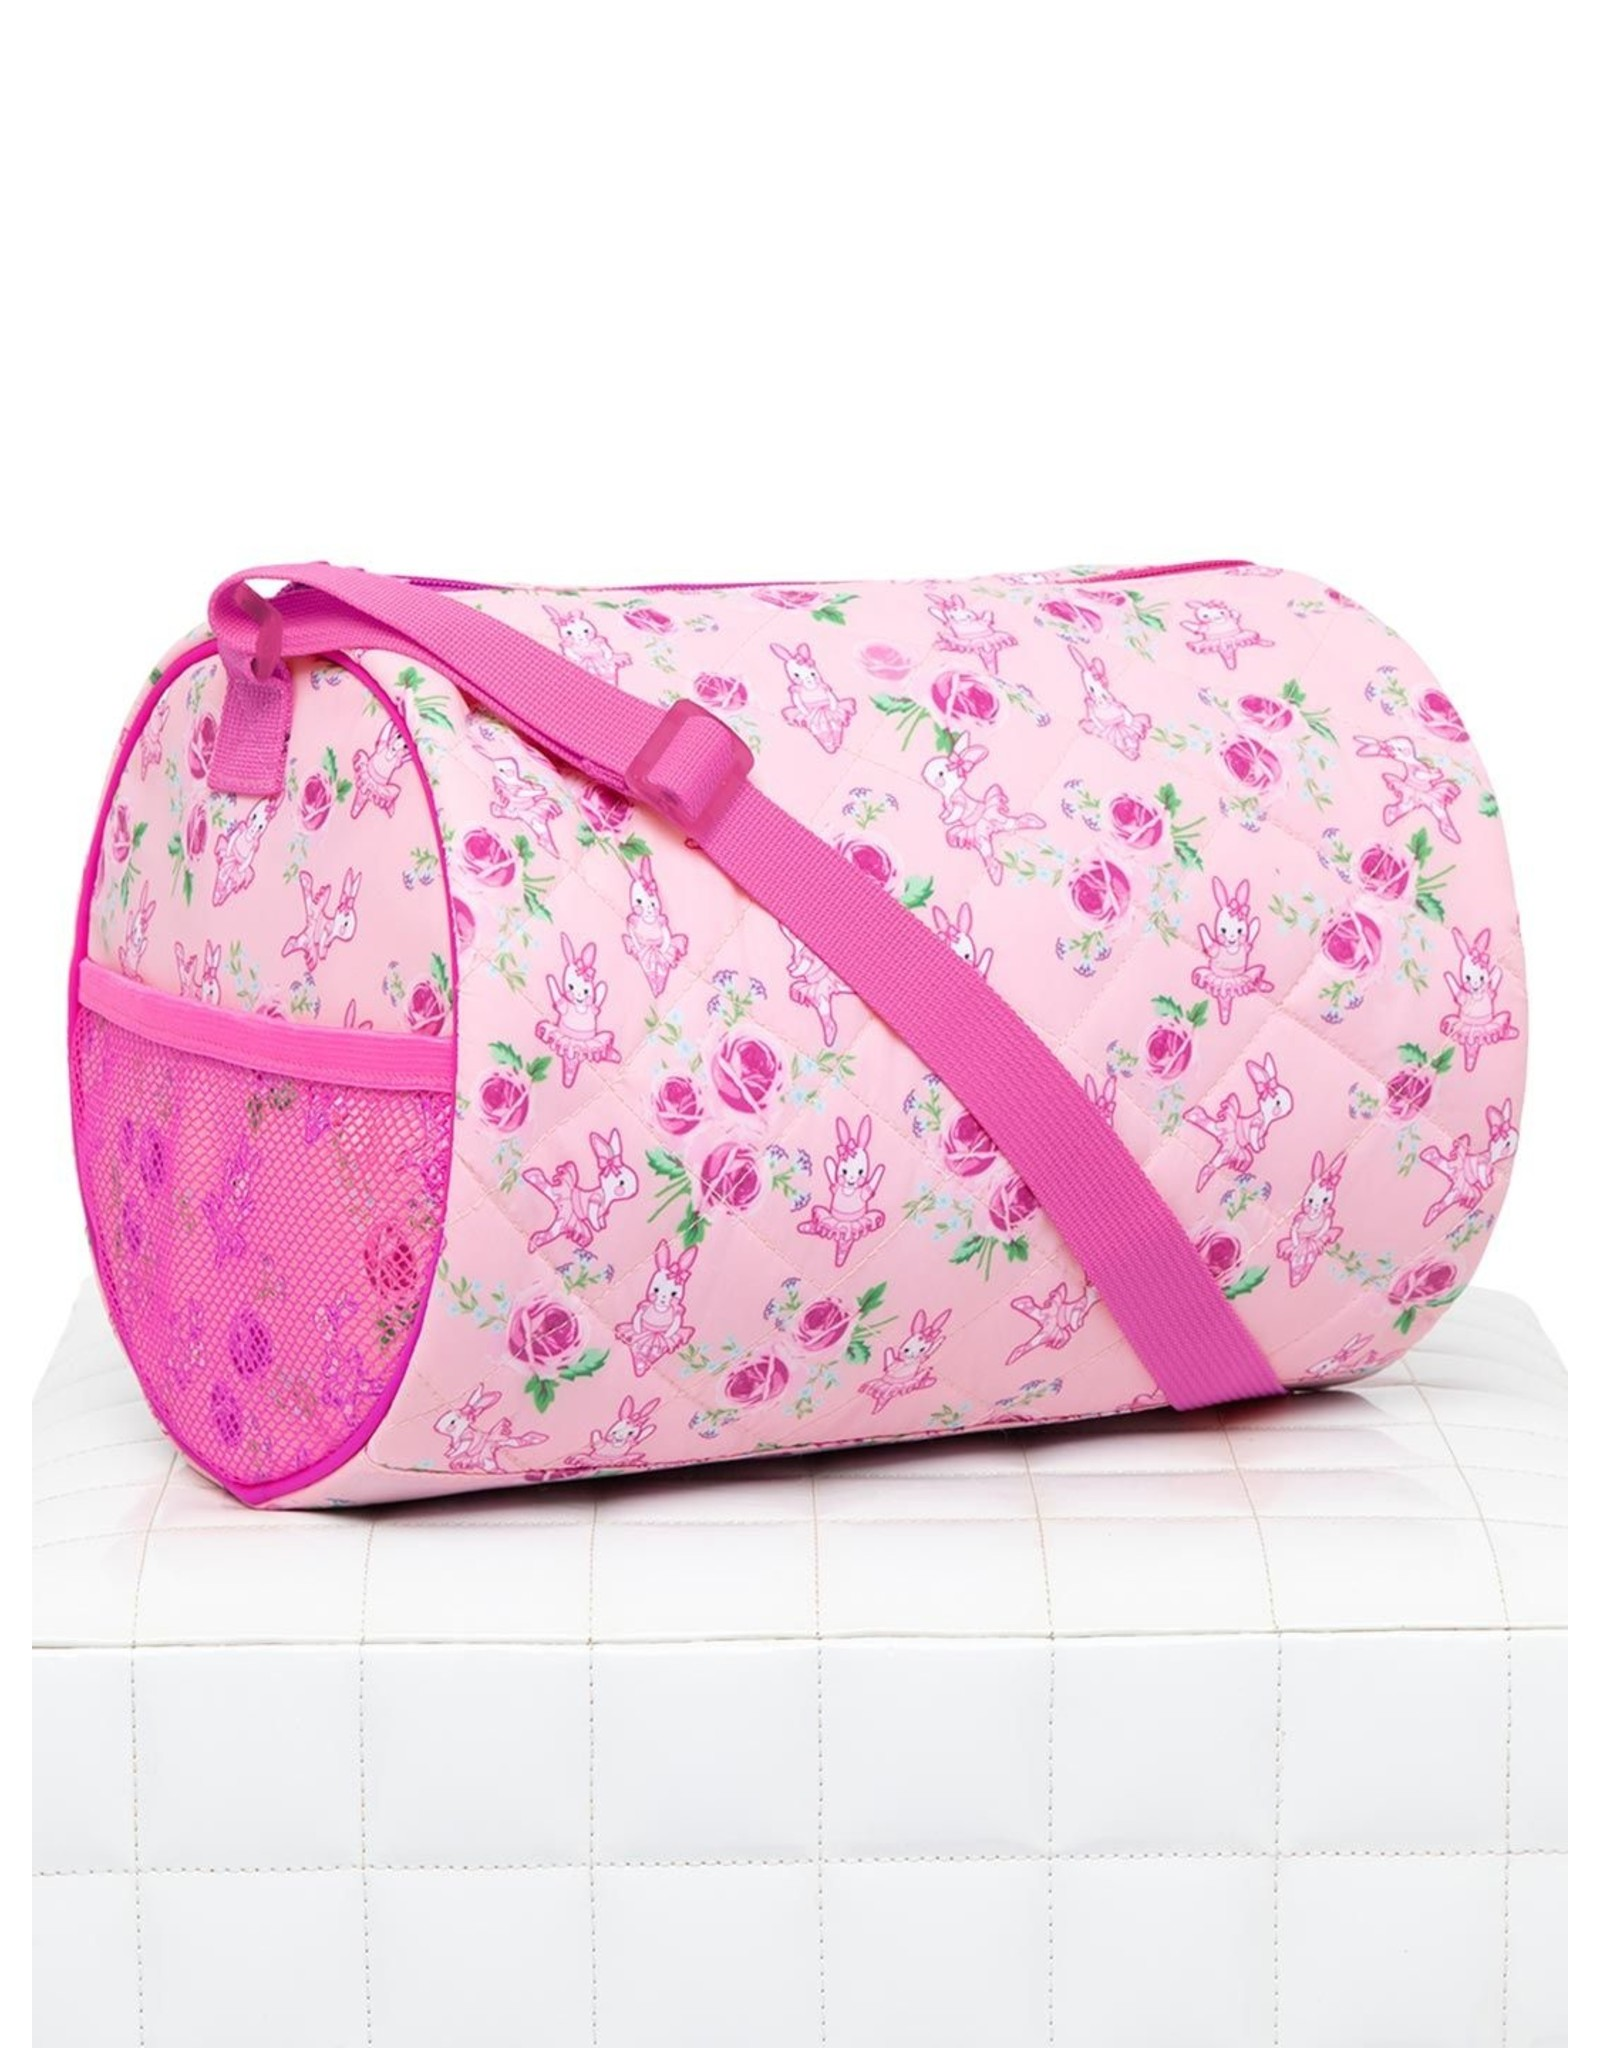 CAPEZIO BUNNY BARREL DANCE BAG